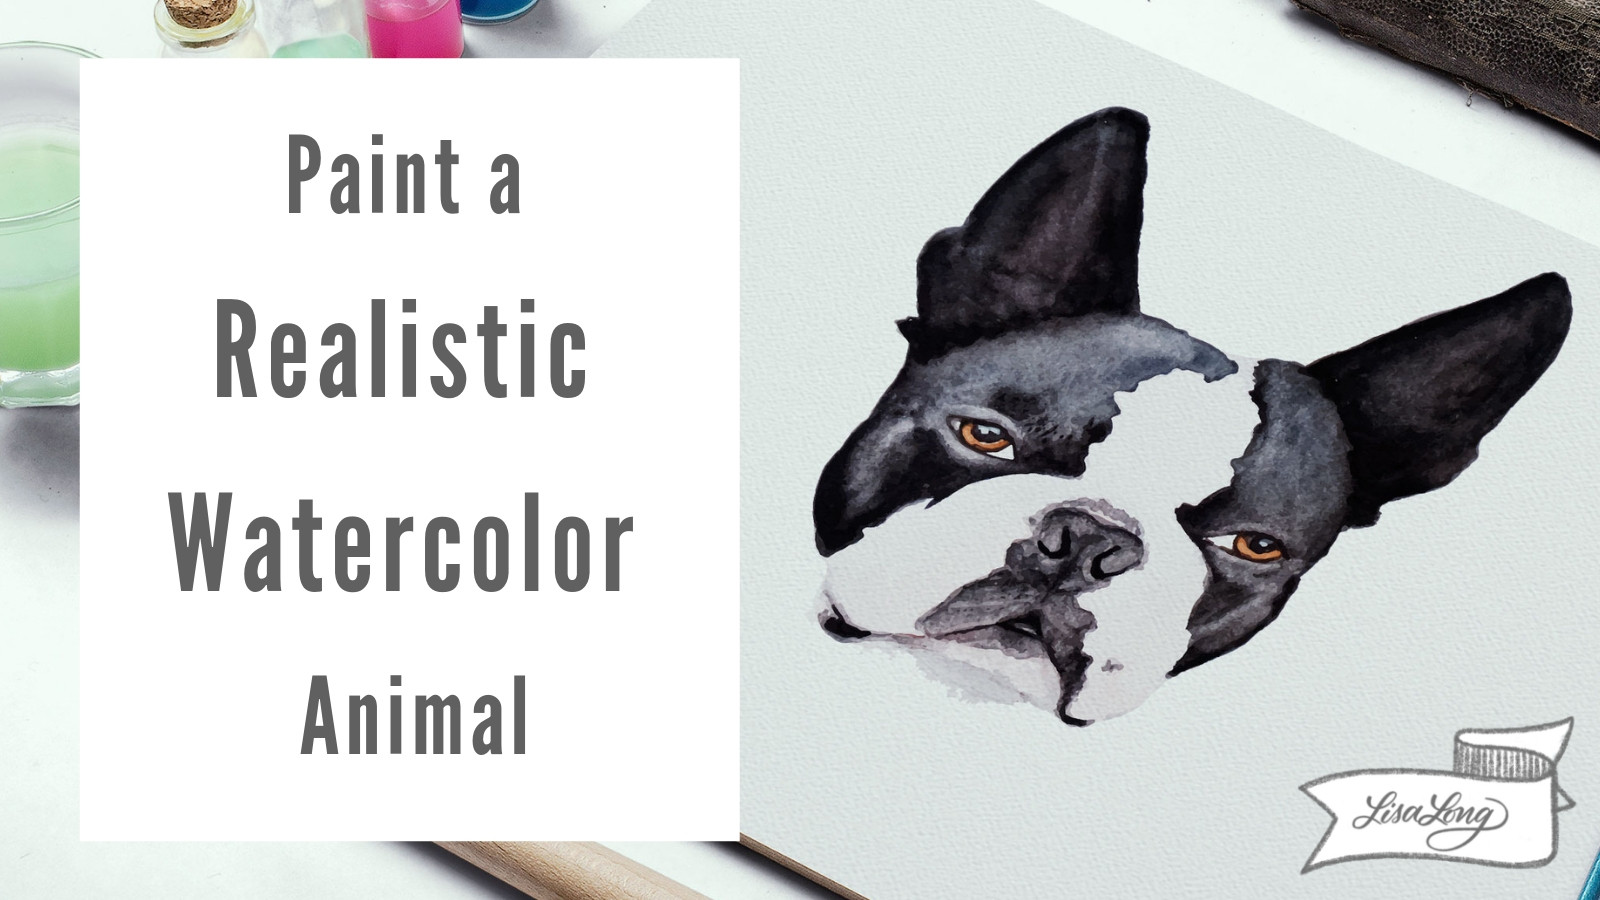 Paint a Realistic Watercolor Boston Terrier